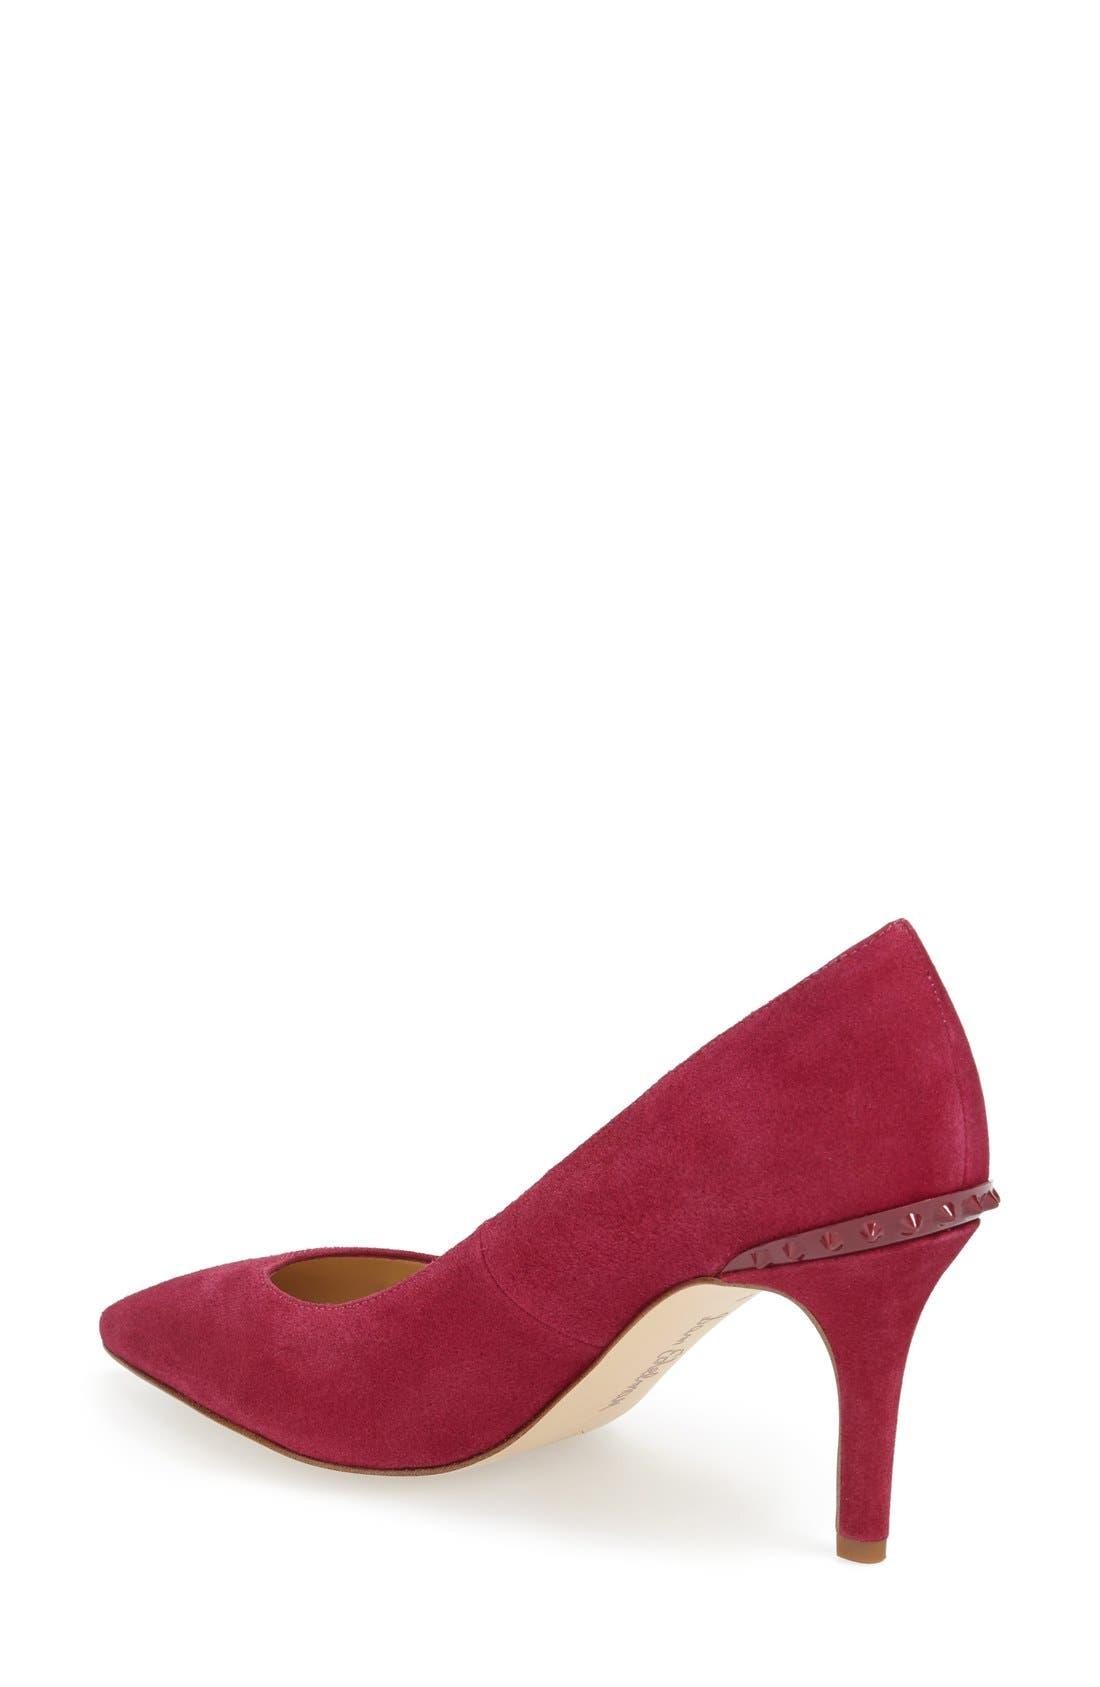 'Tonia' Spike Rand Pointy Toe Pump,                             Alternate thumbnail 2, color,                             Pink Suede